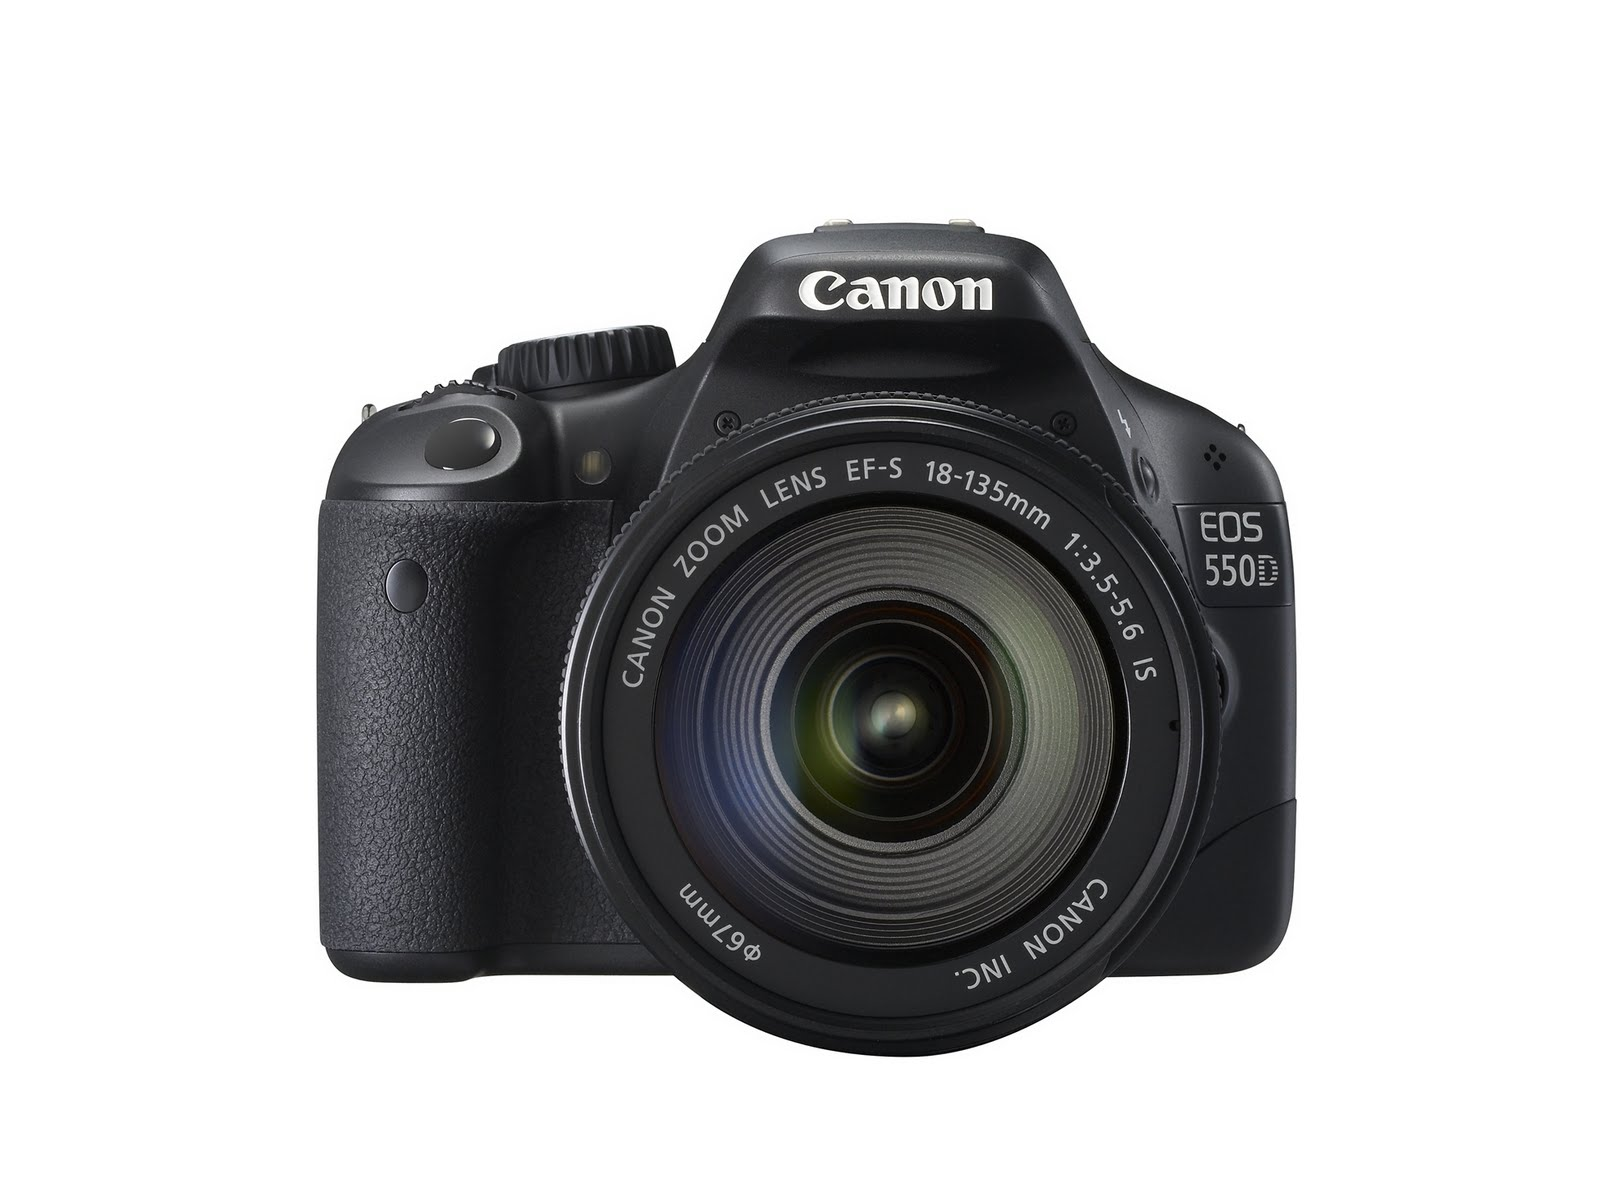 Canon EOS 550D / Rebel T2i DSLR Camera Technical Specs | Photography